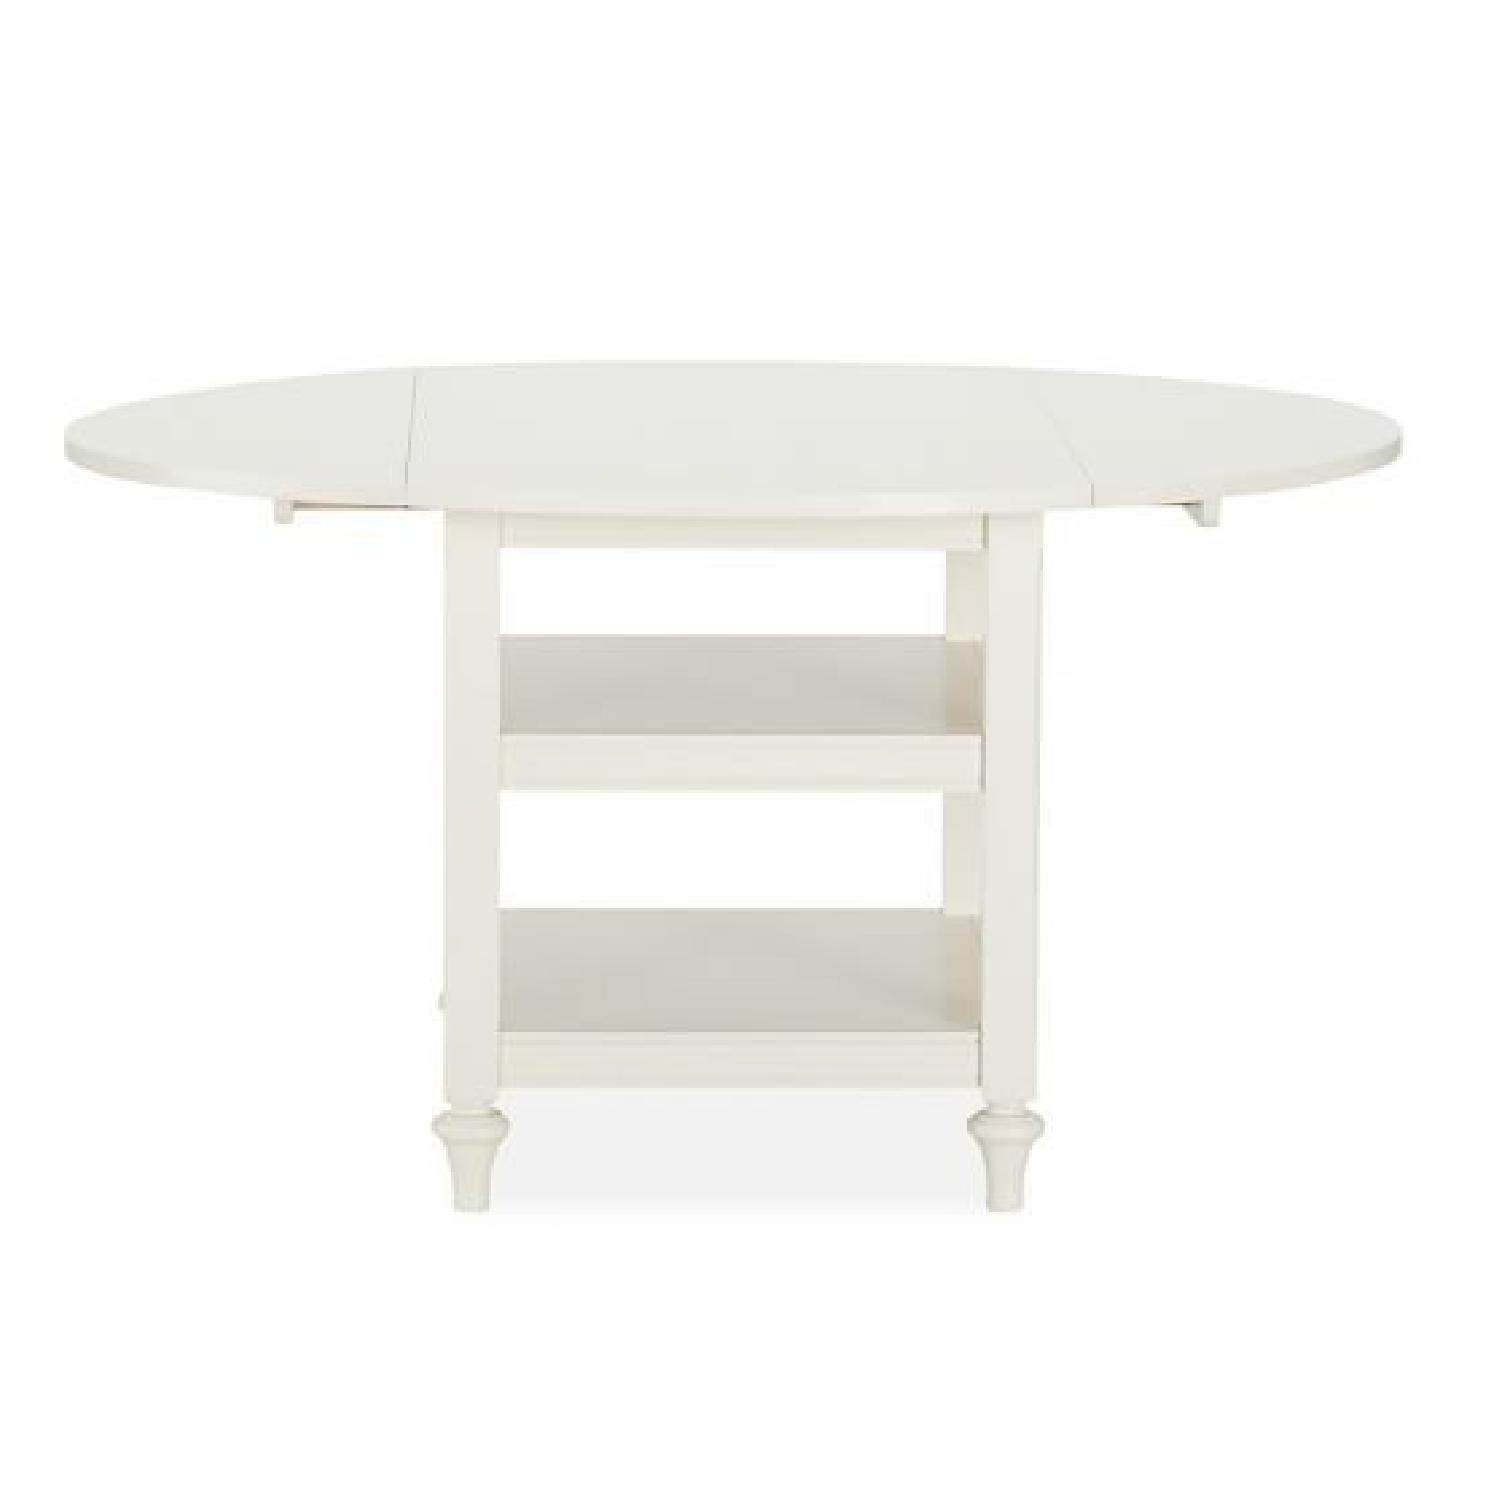 Pottery Barn Oval Drop Leaf Table | Dining Tables | White Intended For Latest Antique White Shayne Drop Leaf Kitchen Tables (View 4 of 25)